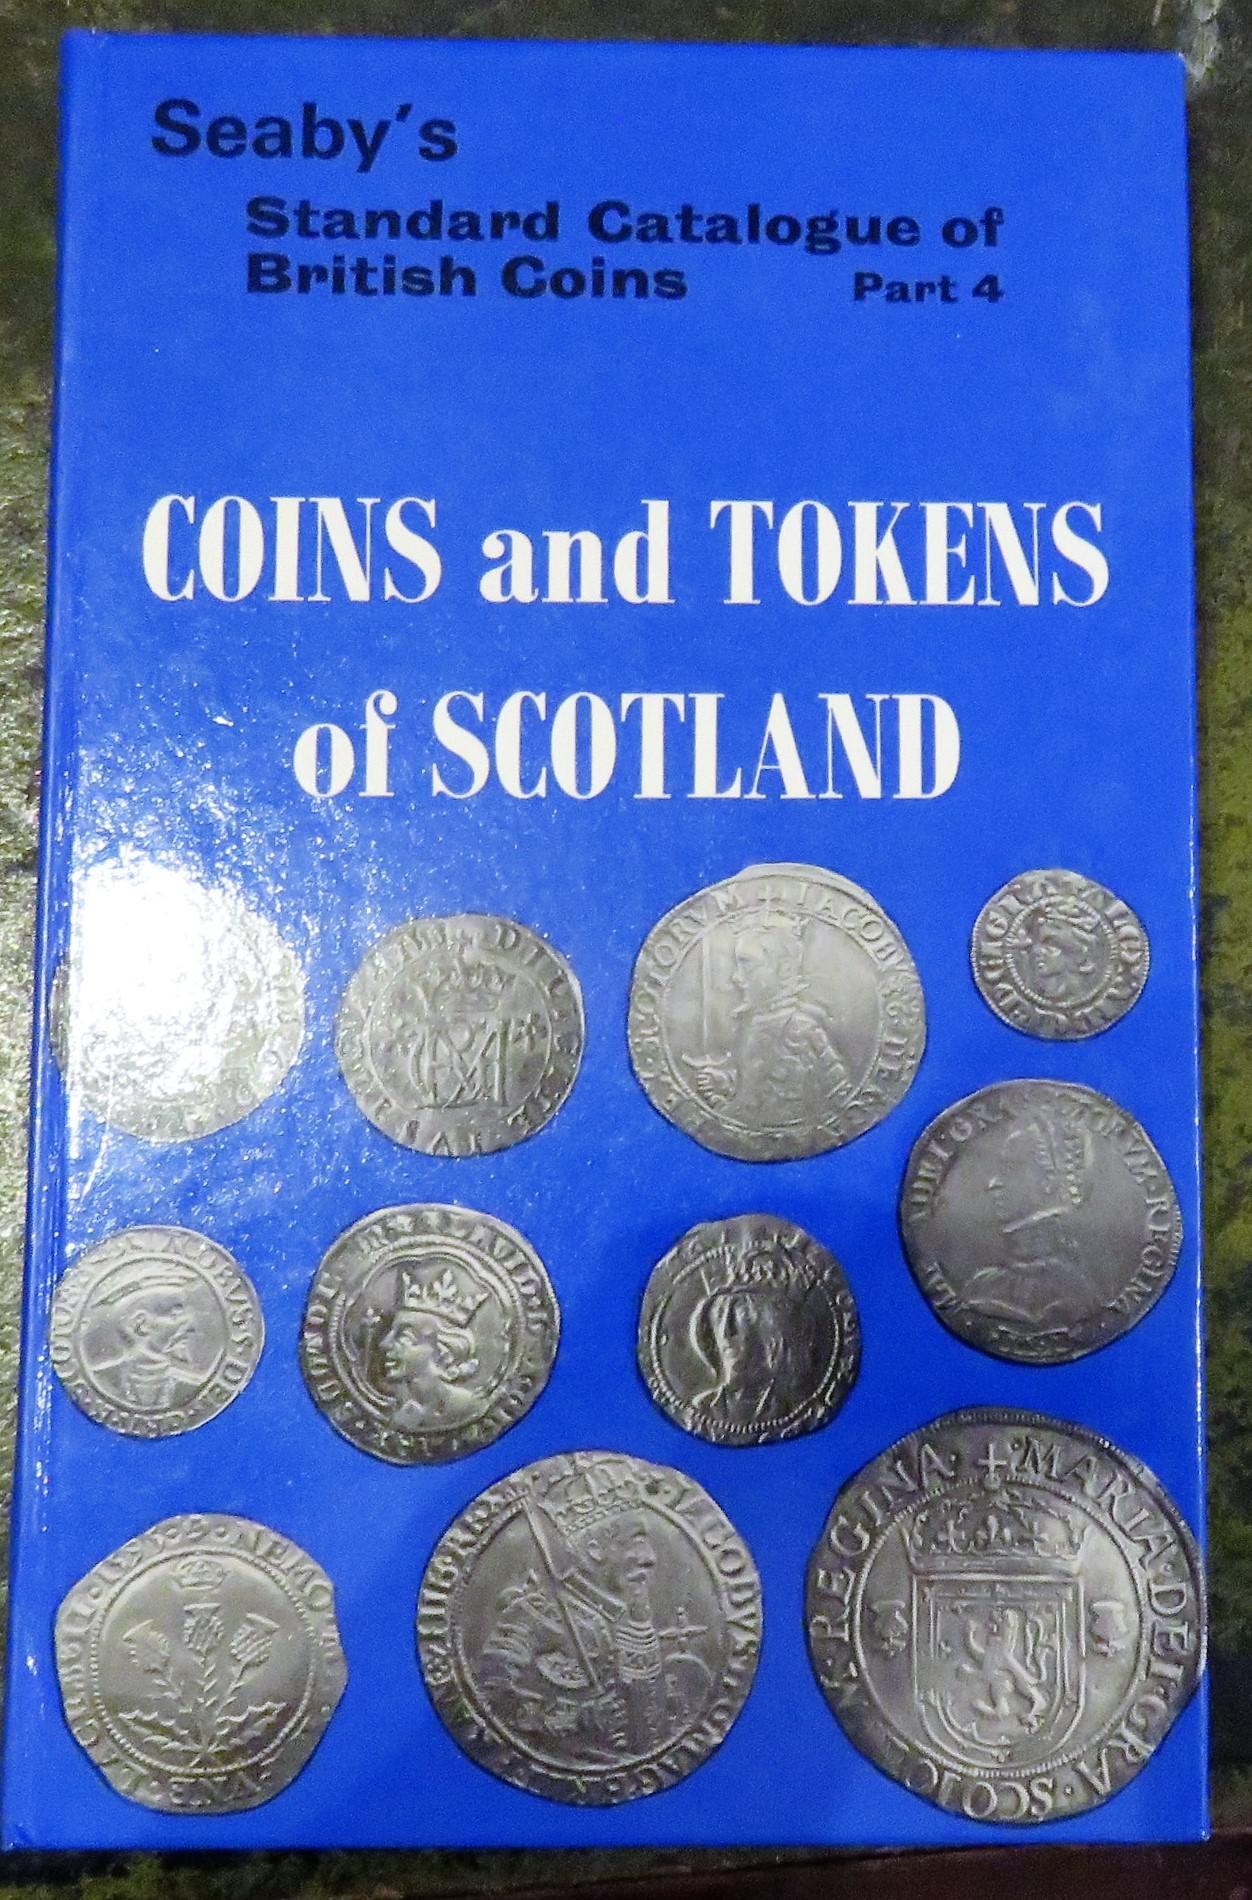 Seaby's Standard Catalogue of British Coins Part 4 Coins and Tokens of Scotland